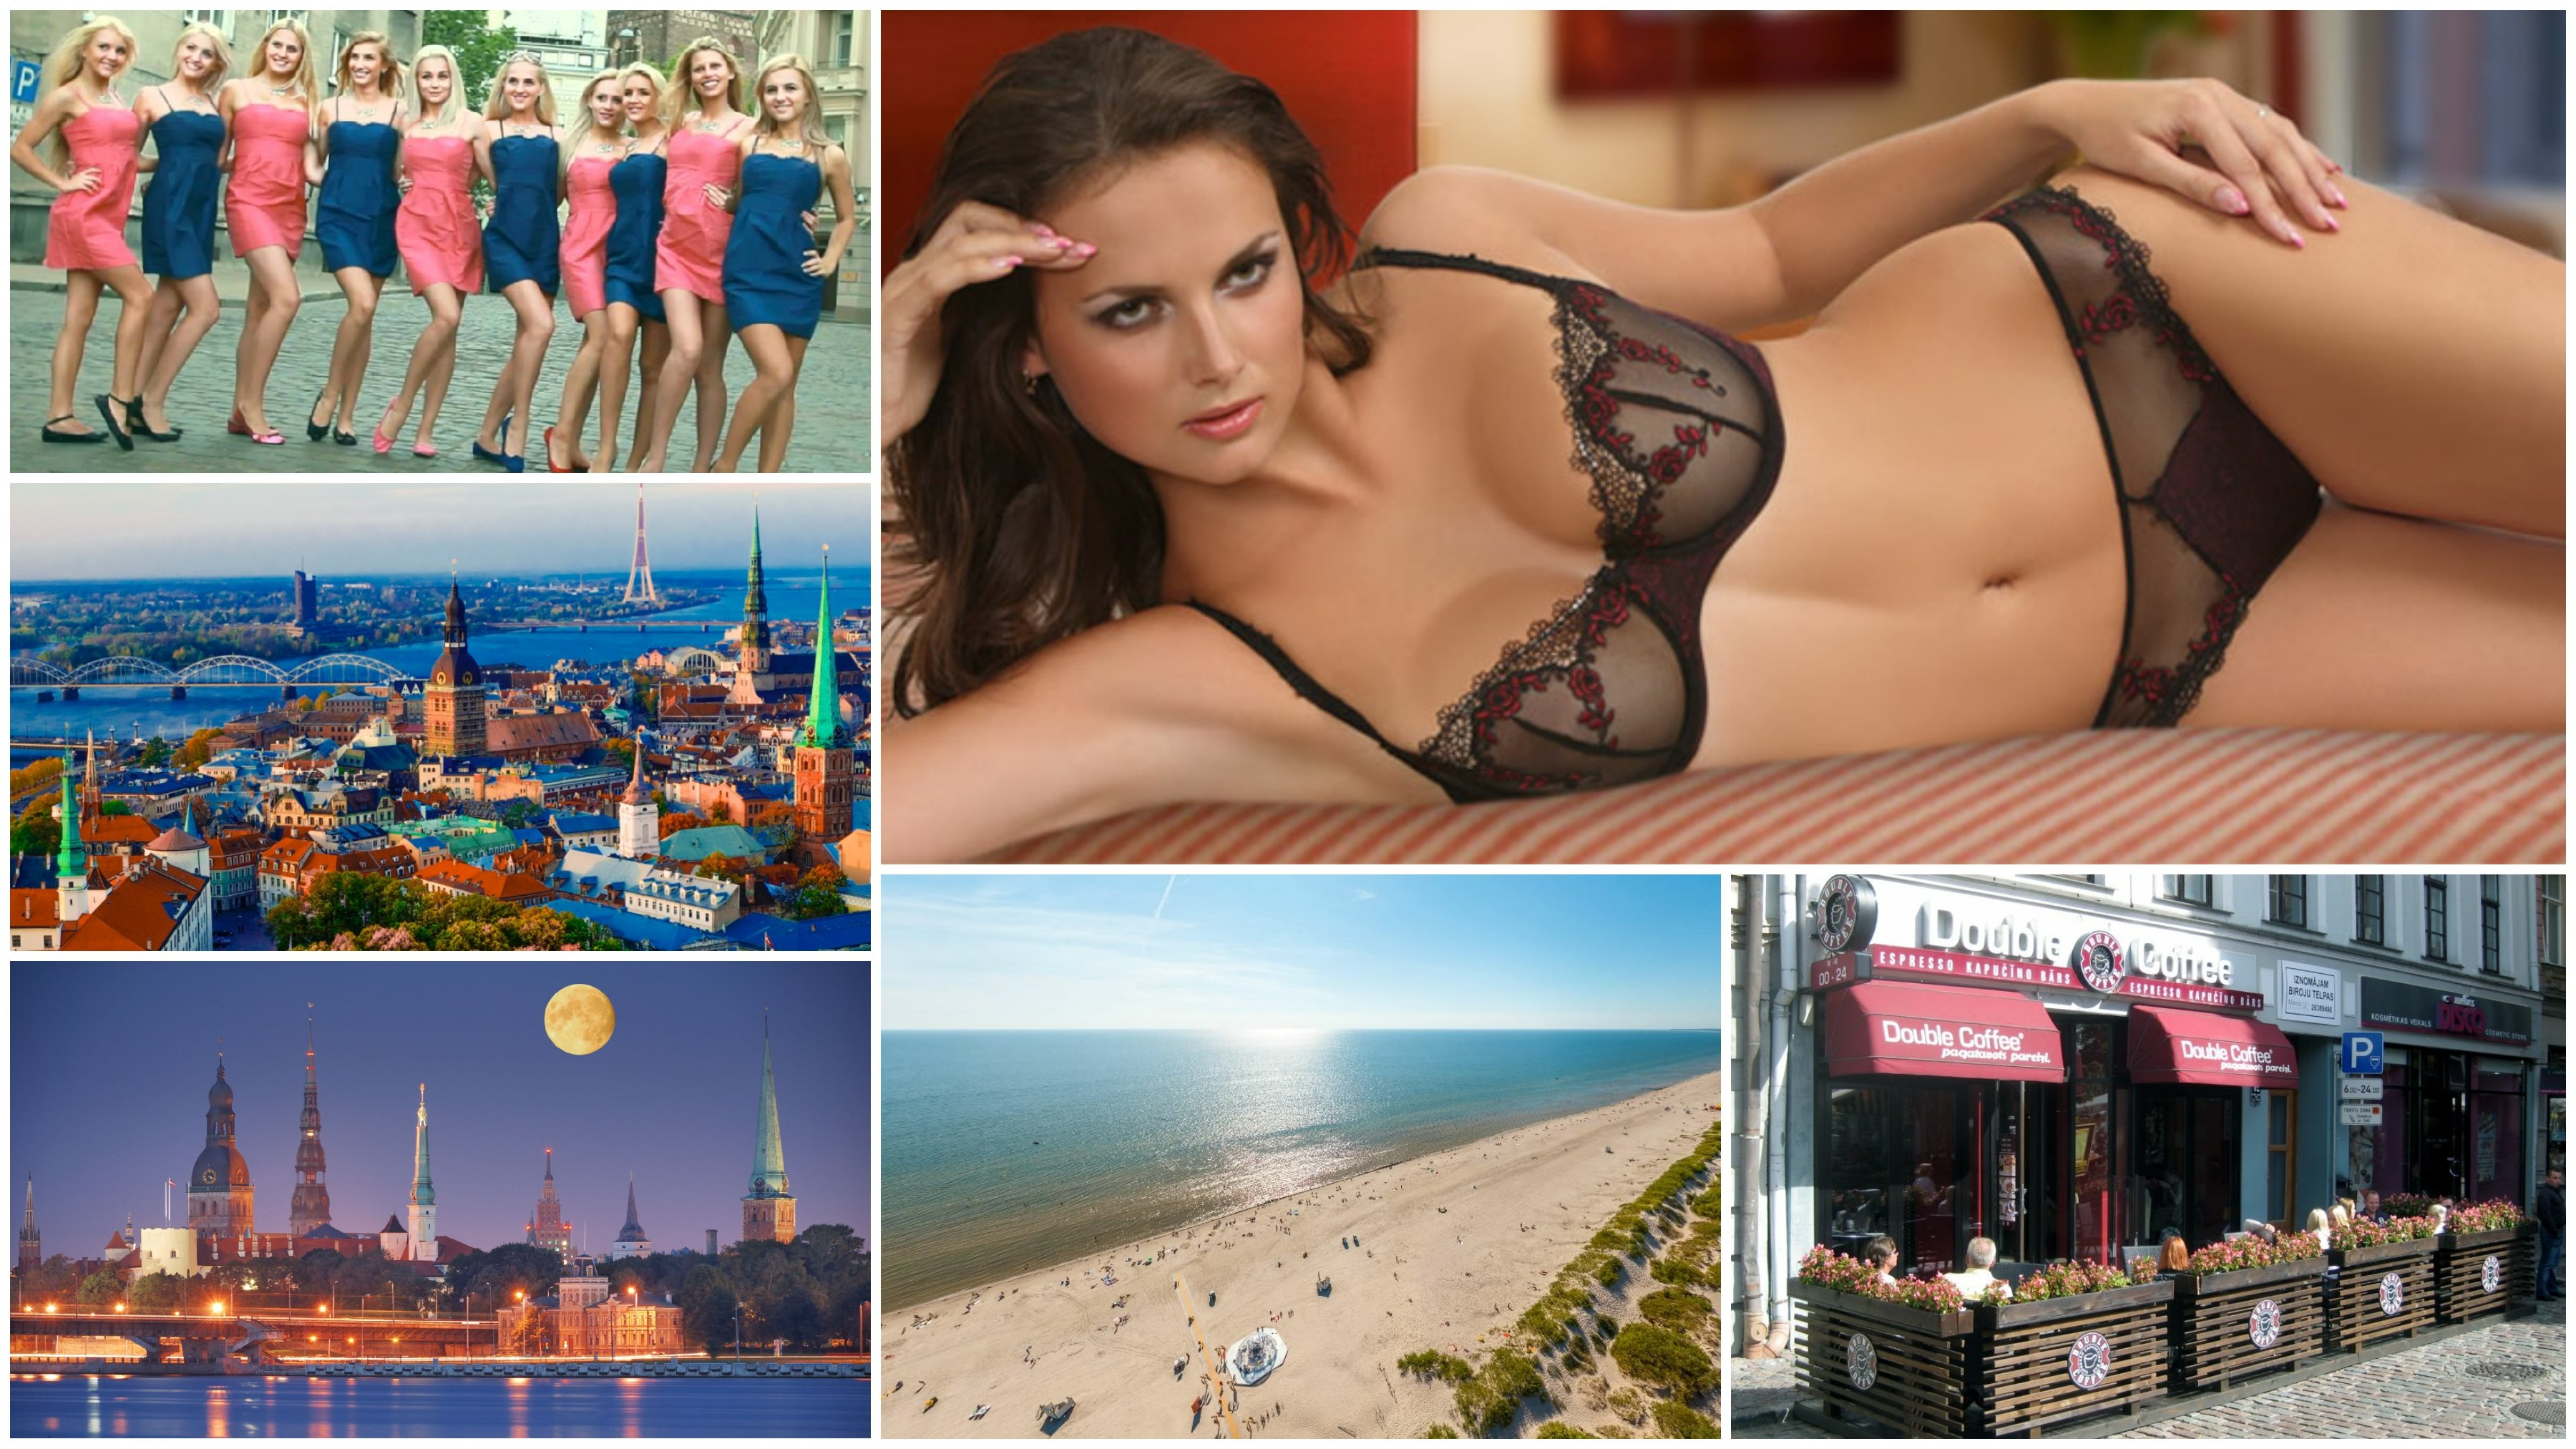 places and girls in Latvia